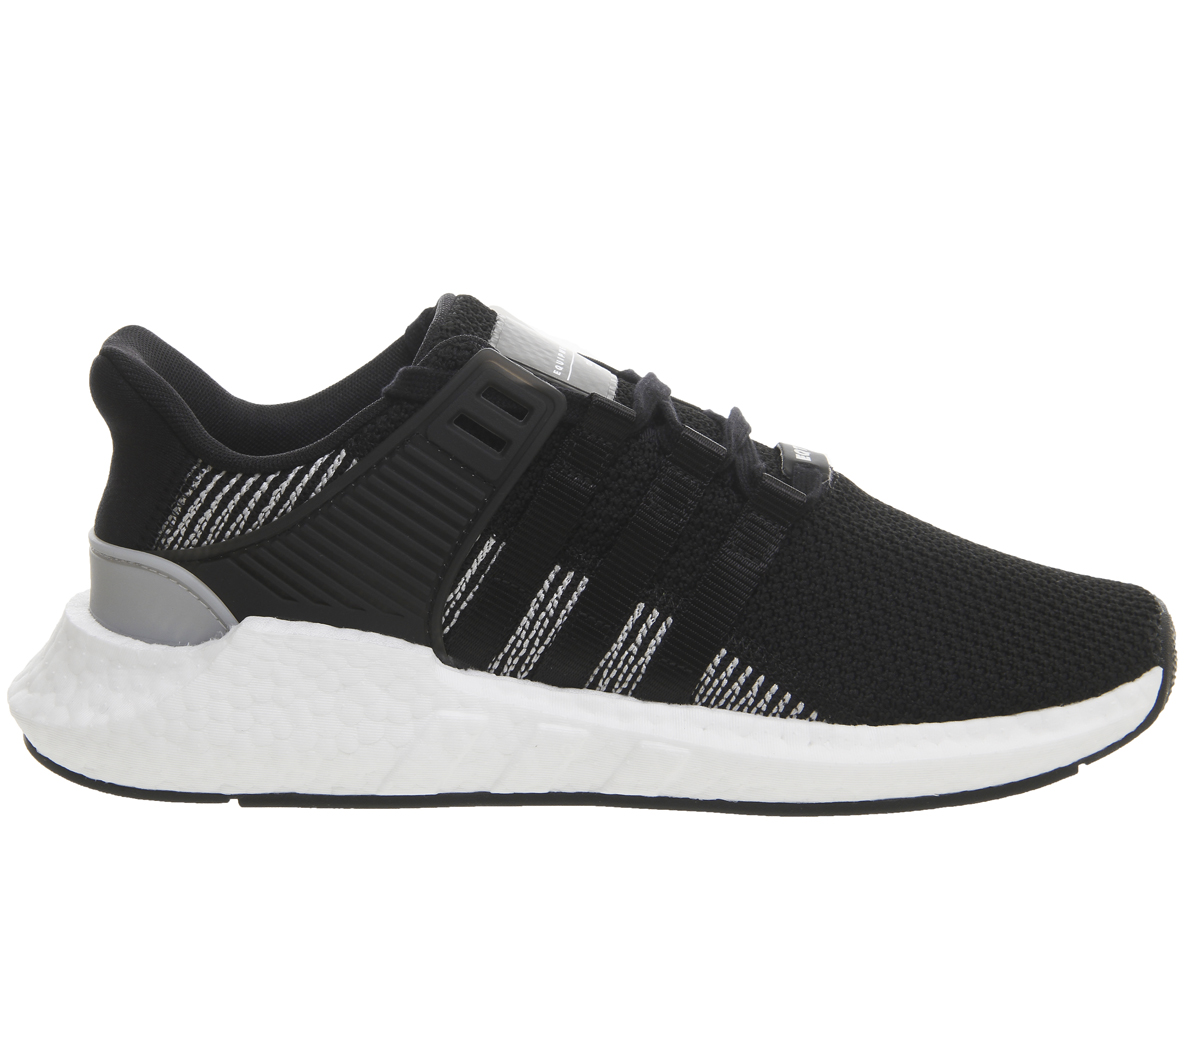 sports shoes 6b07c 035f6 SENTINELLE Adidas Eqt Support 93 17 CORE formateurs blanc noir chaussures